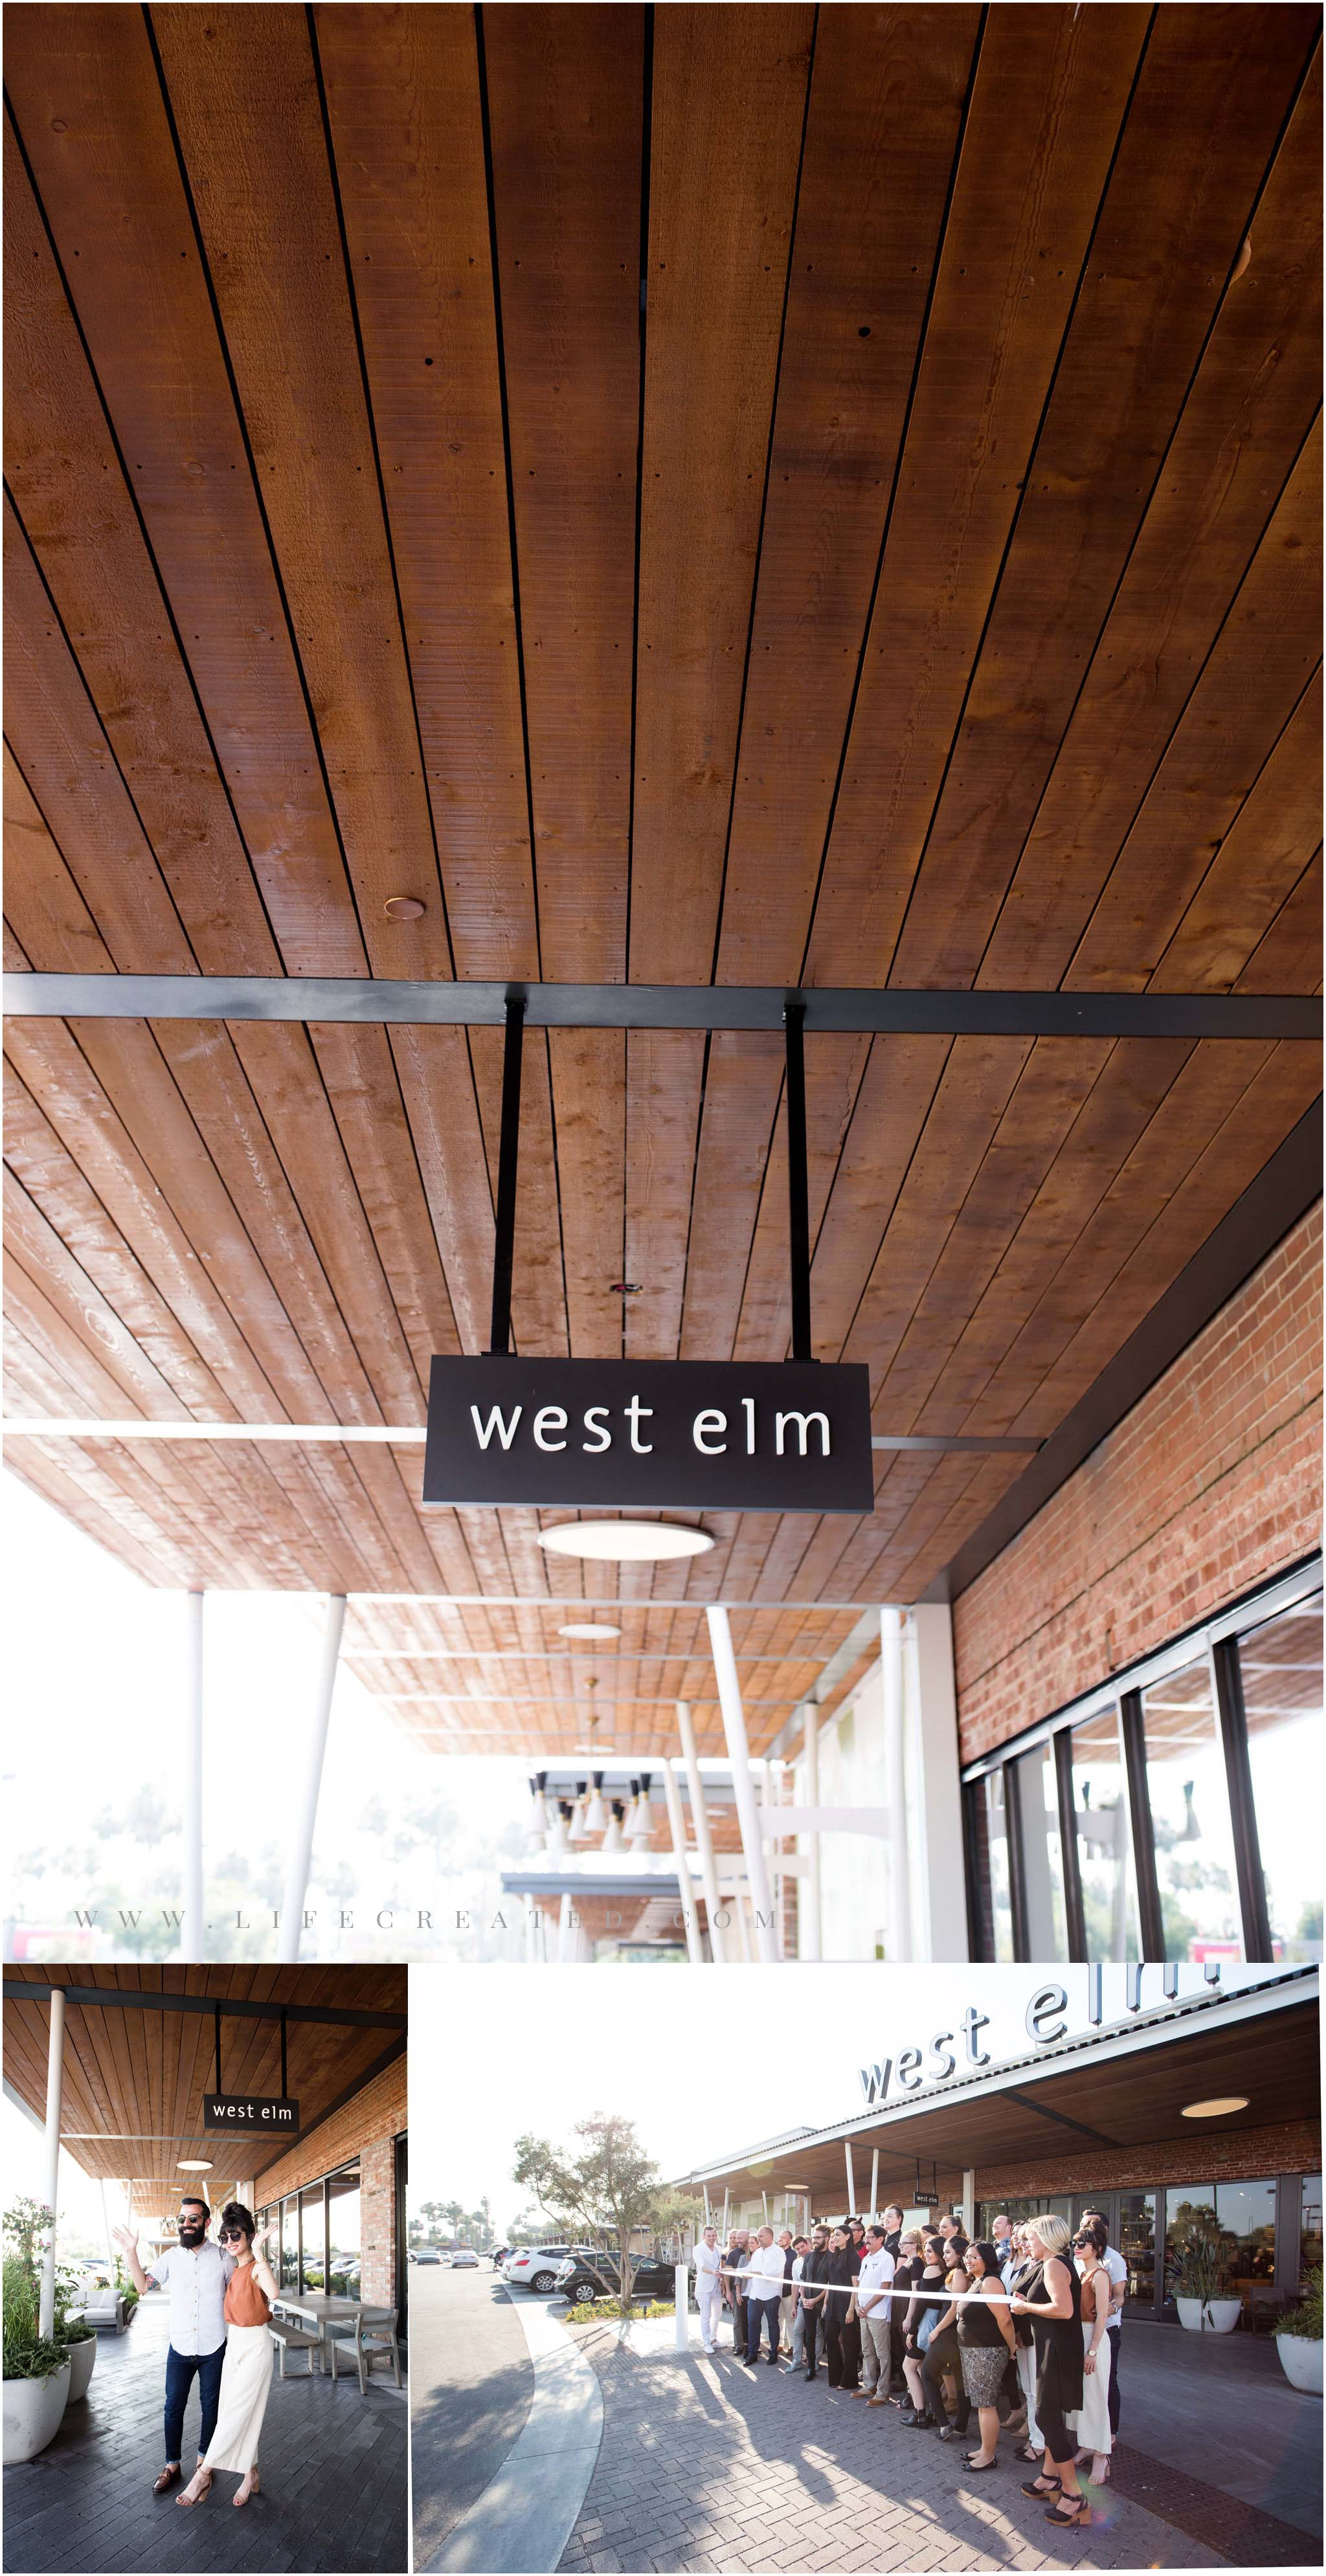 west elm grand opening